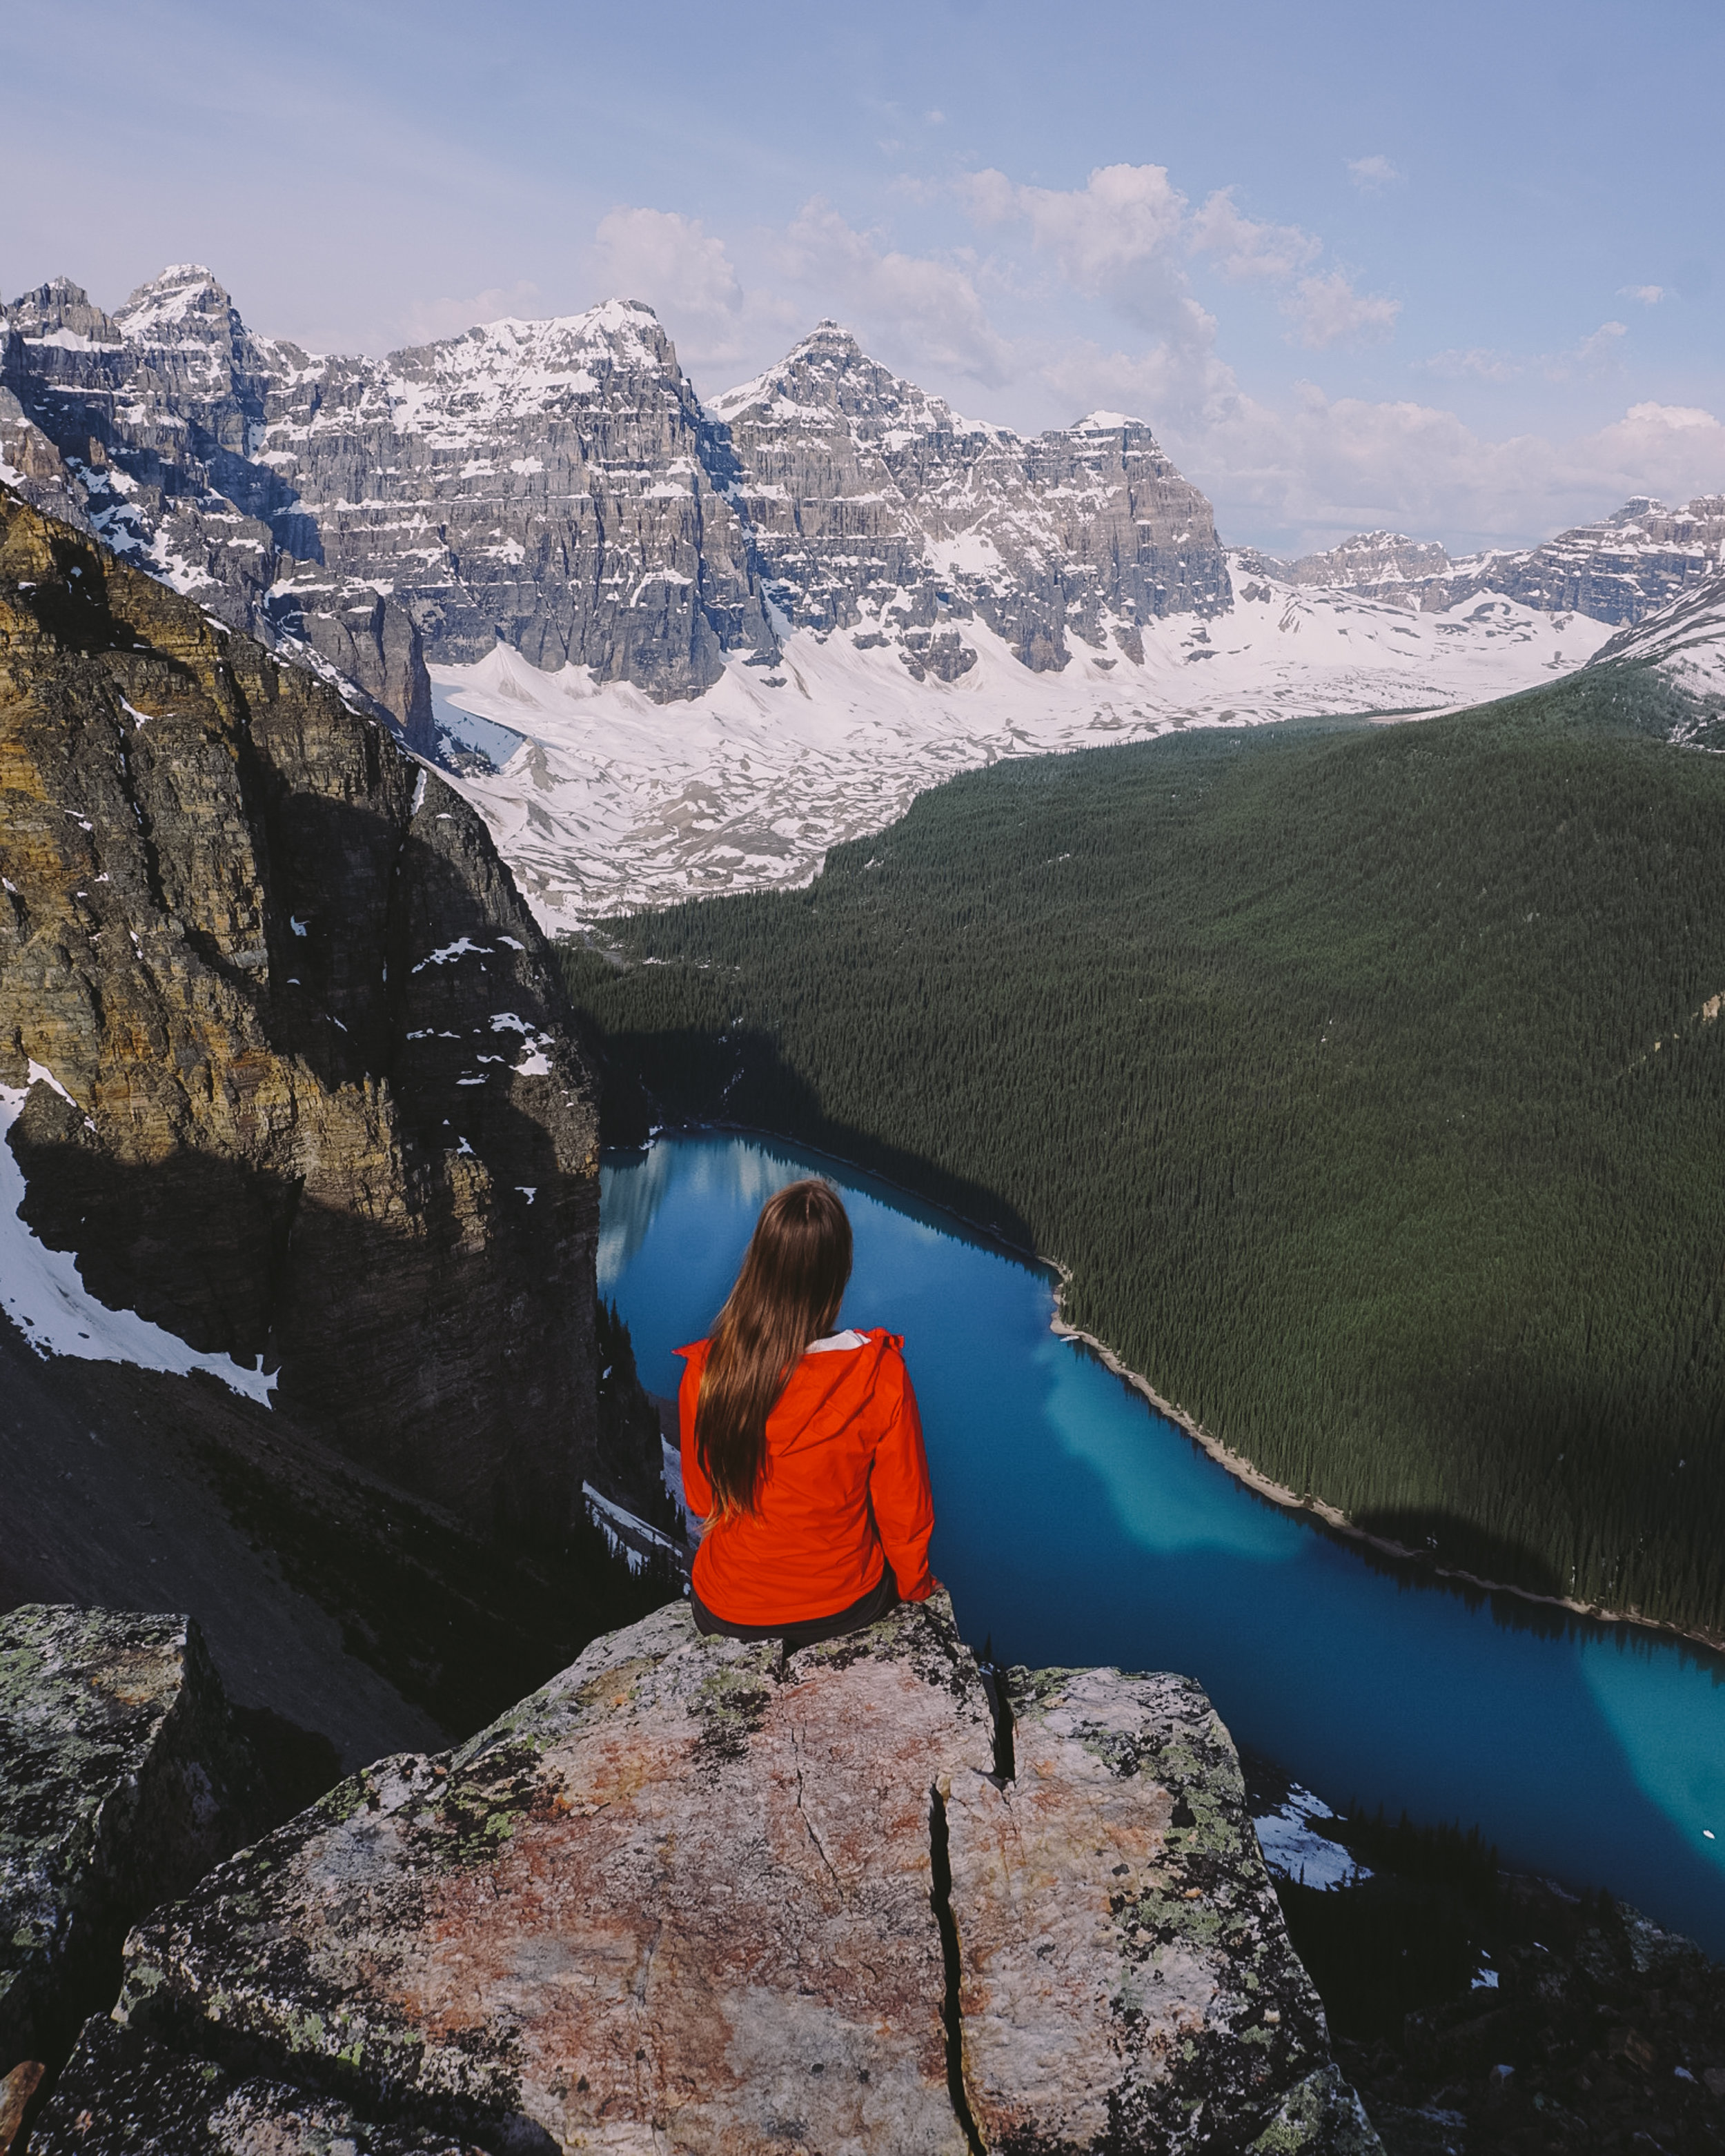 An early season ascent of Tower of Babel looking over Moraine Lake.